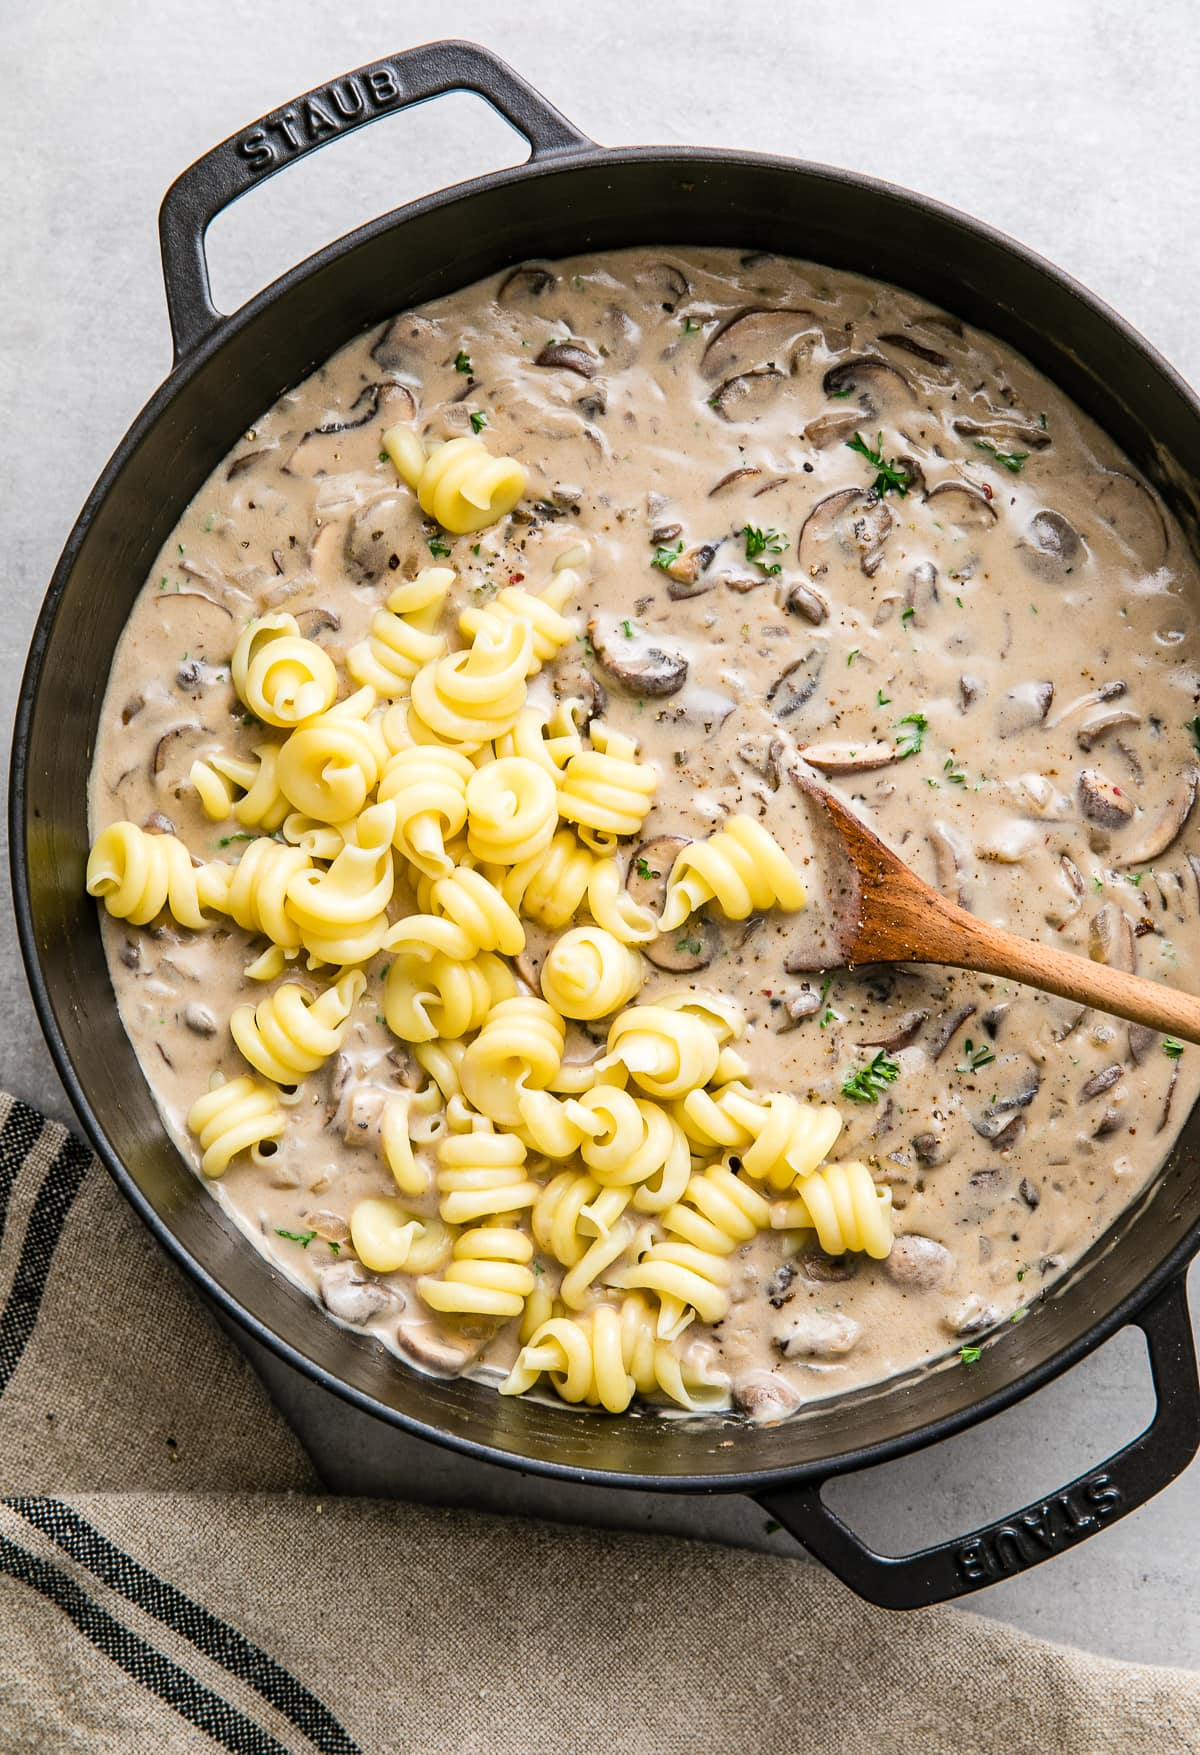 top down view of pasta added to creamy vegan mushroom stroganoff in a black pot.